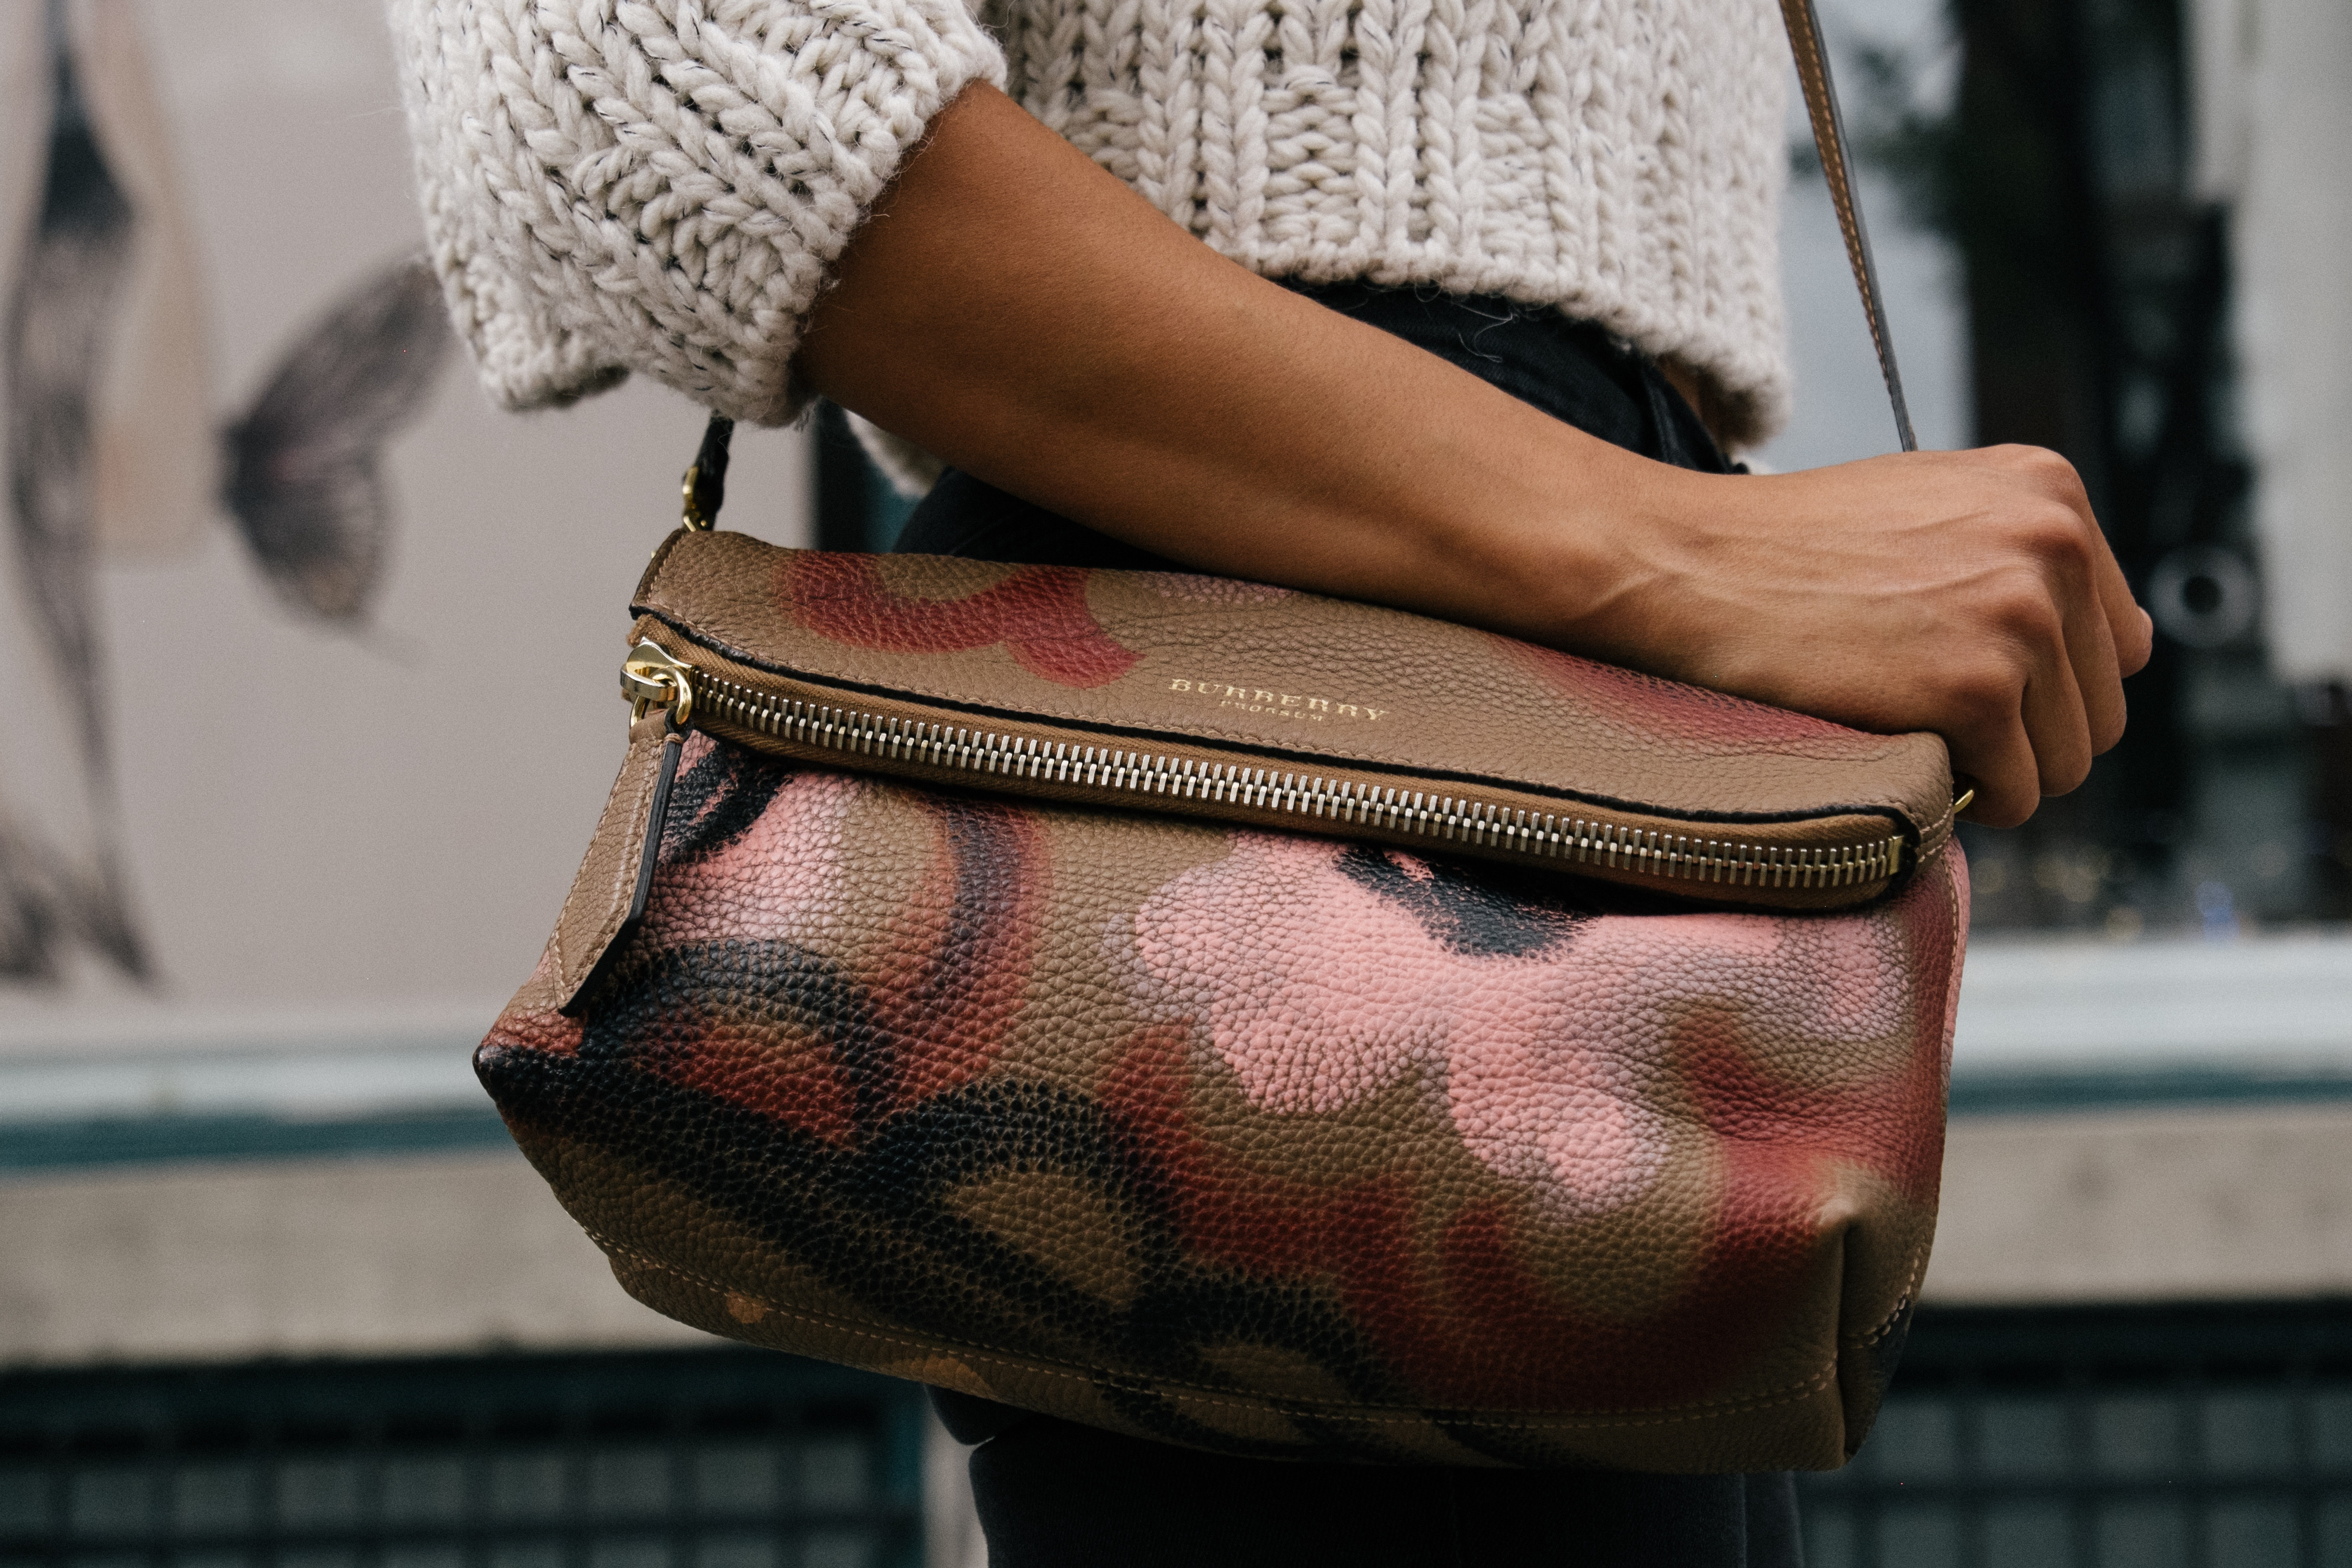 Tips for Purchasing Your First Luxury Handbag